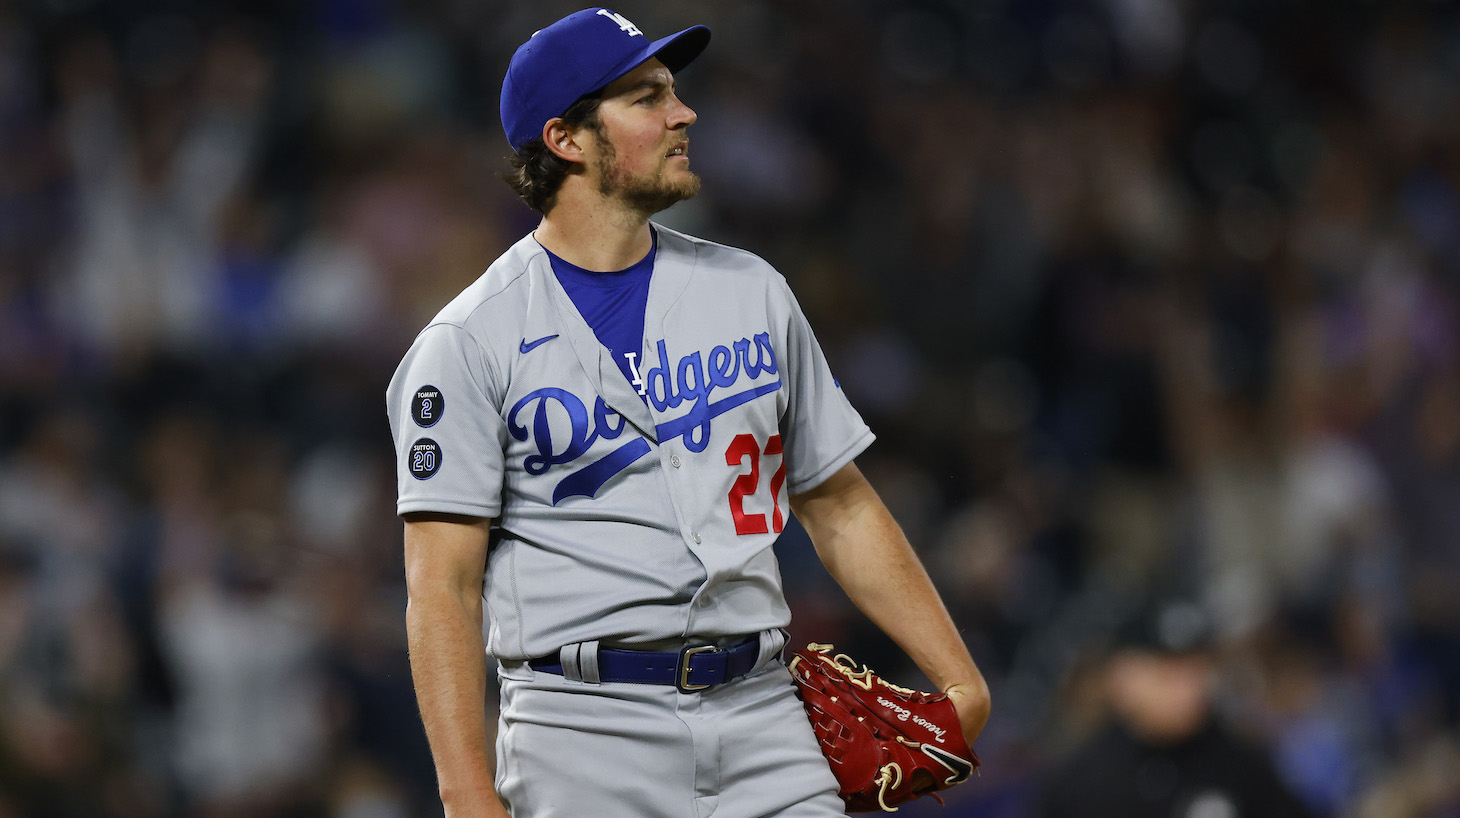 DENVER, CO - APRIL 2: Starting pitcher Trevor Bauer #27 of the Los Angeles Dodgers reacts after giving up a two run home run to Ryan McMahon of the Colorado Rockies during the seventh inning at Coors Field on April 2, 2021 in Denver, Colorado. (Photo by Justin Edmonds/Getty Images)